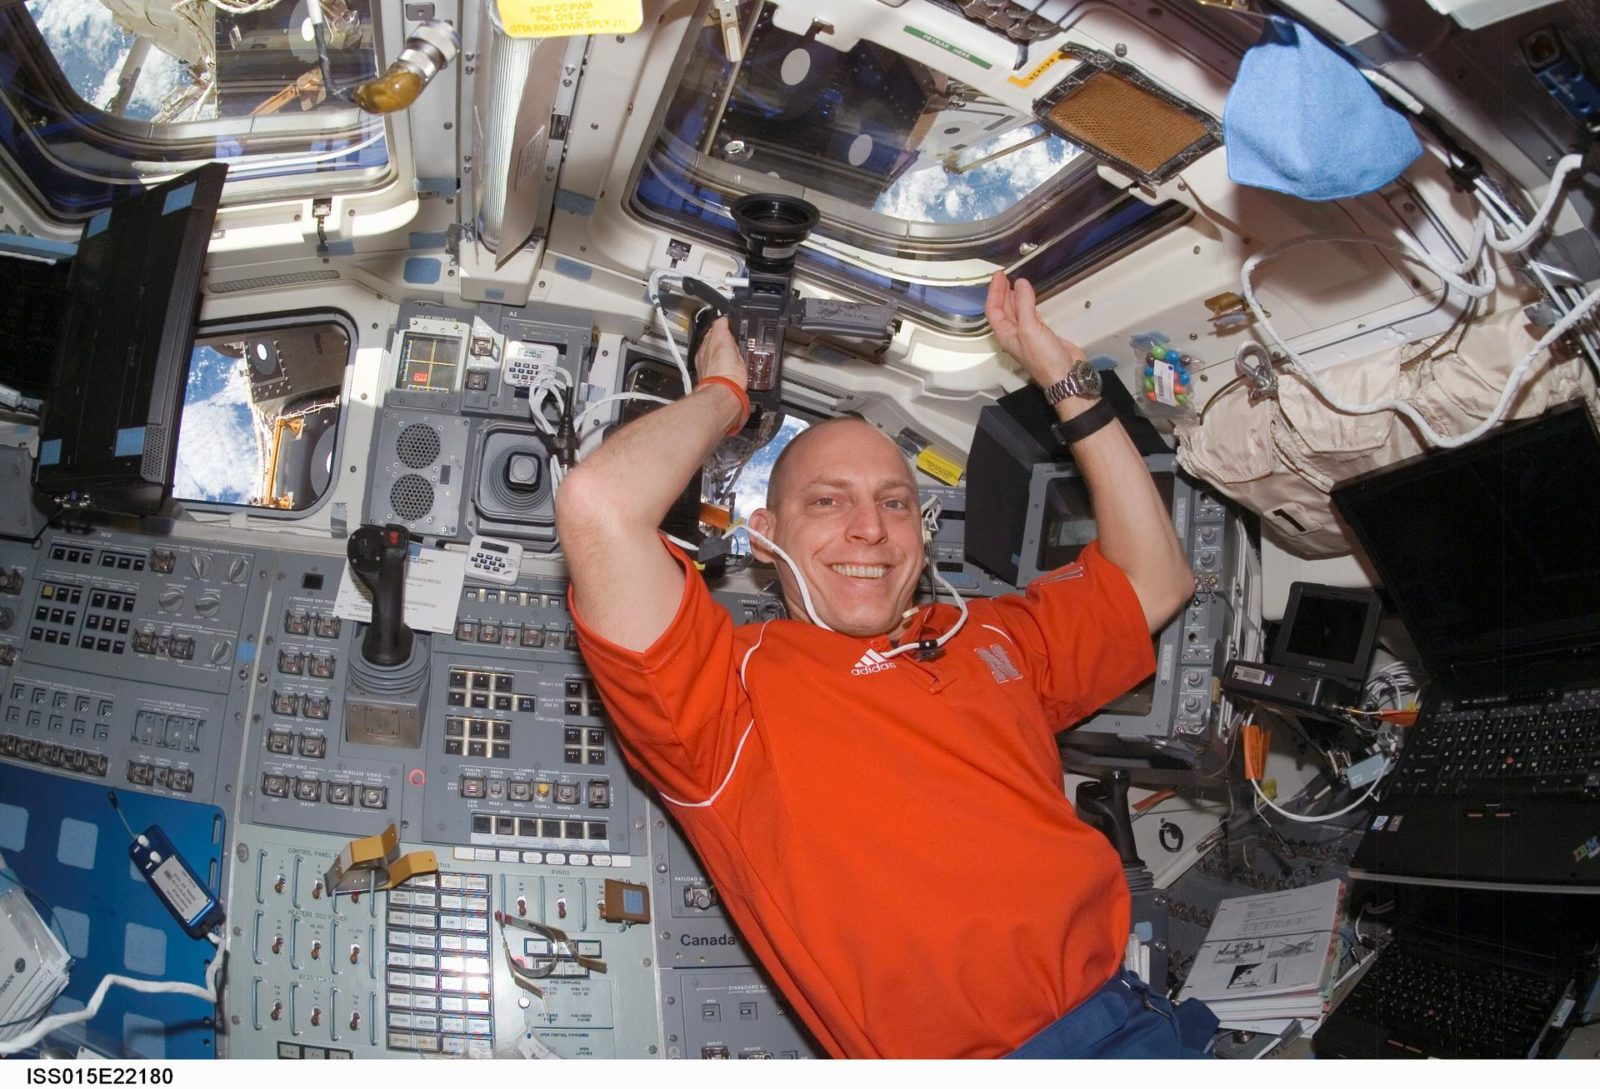 Anderson floats in the aft FD on Space Shuttle Endeavor during Joint Operations